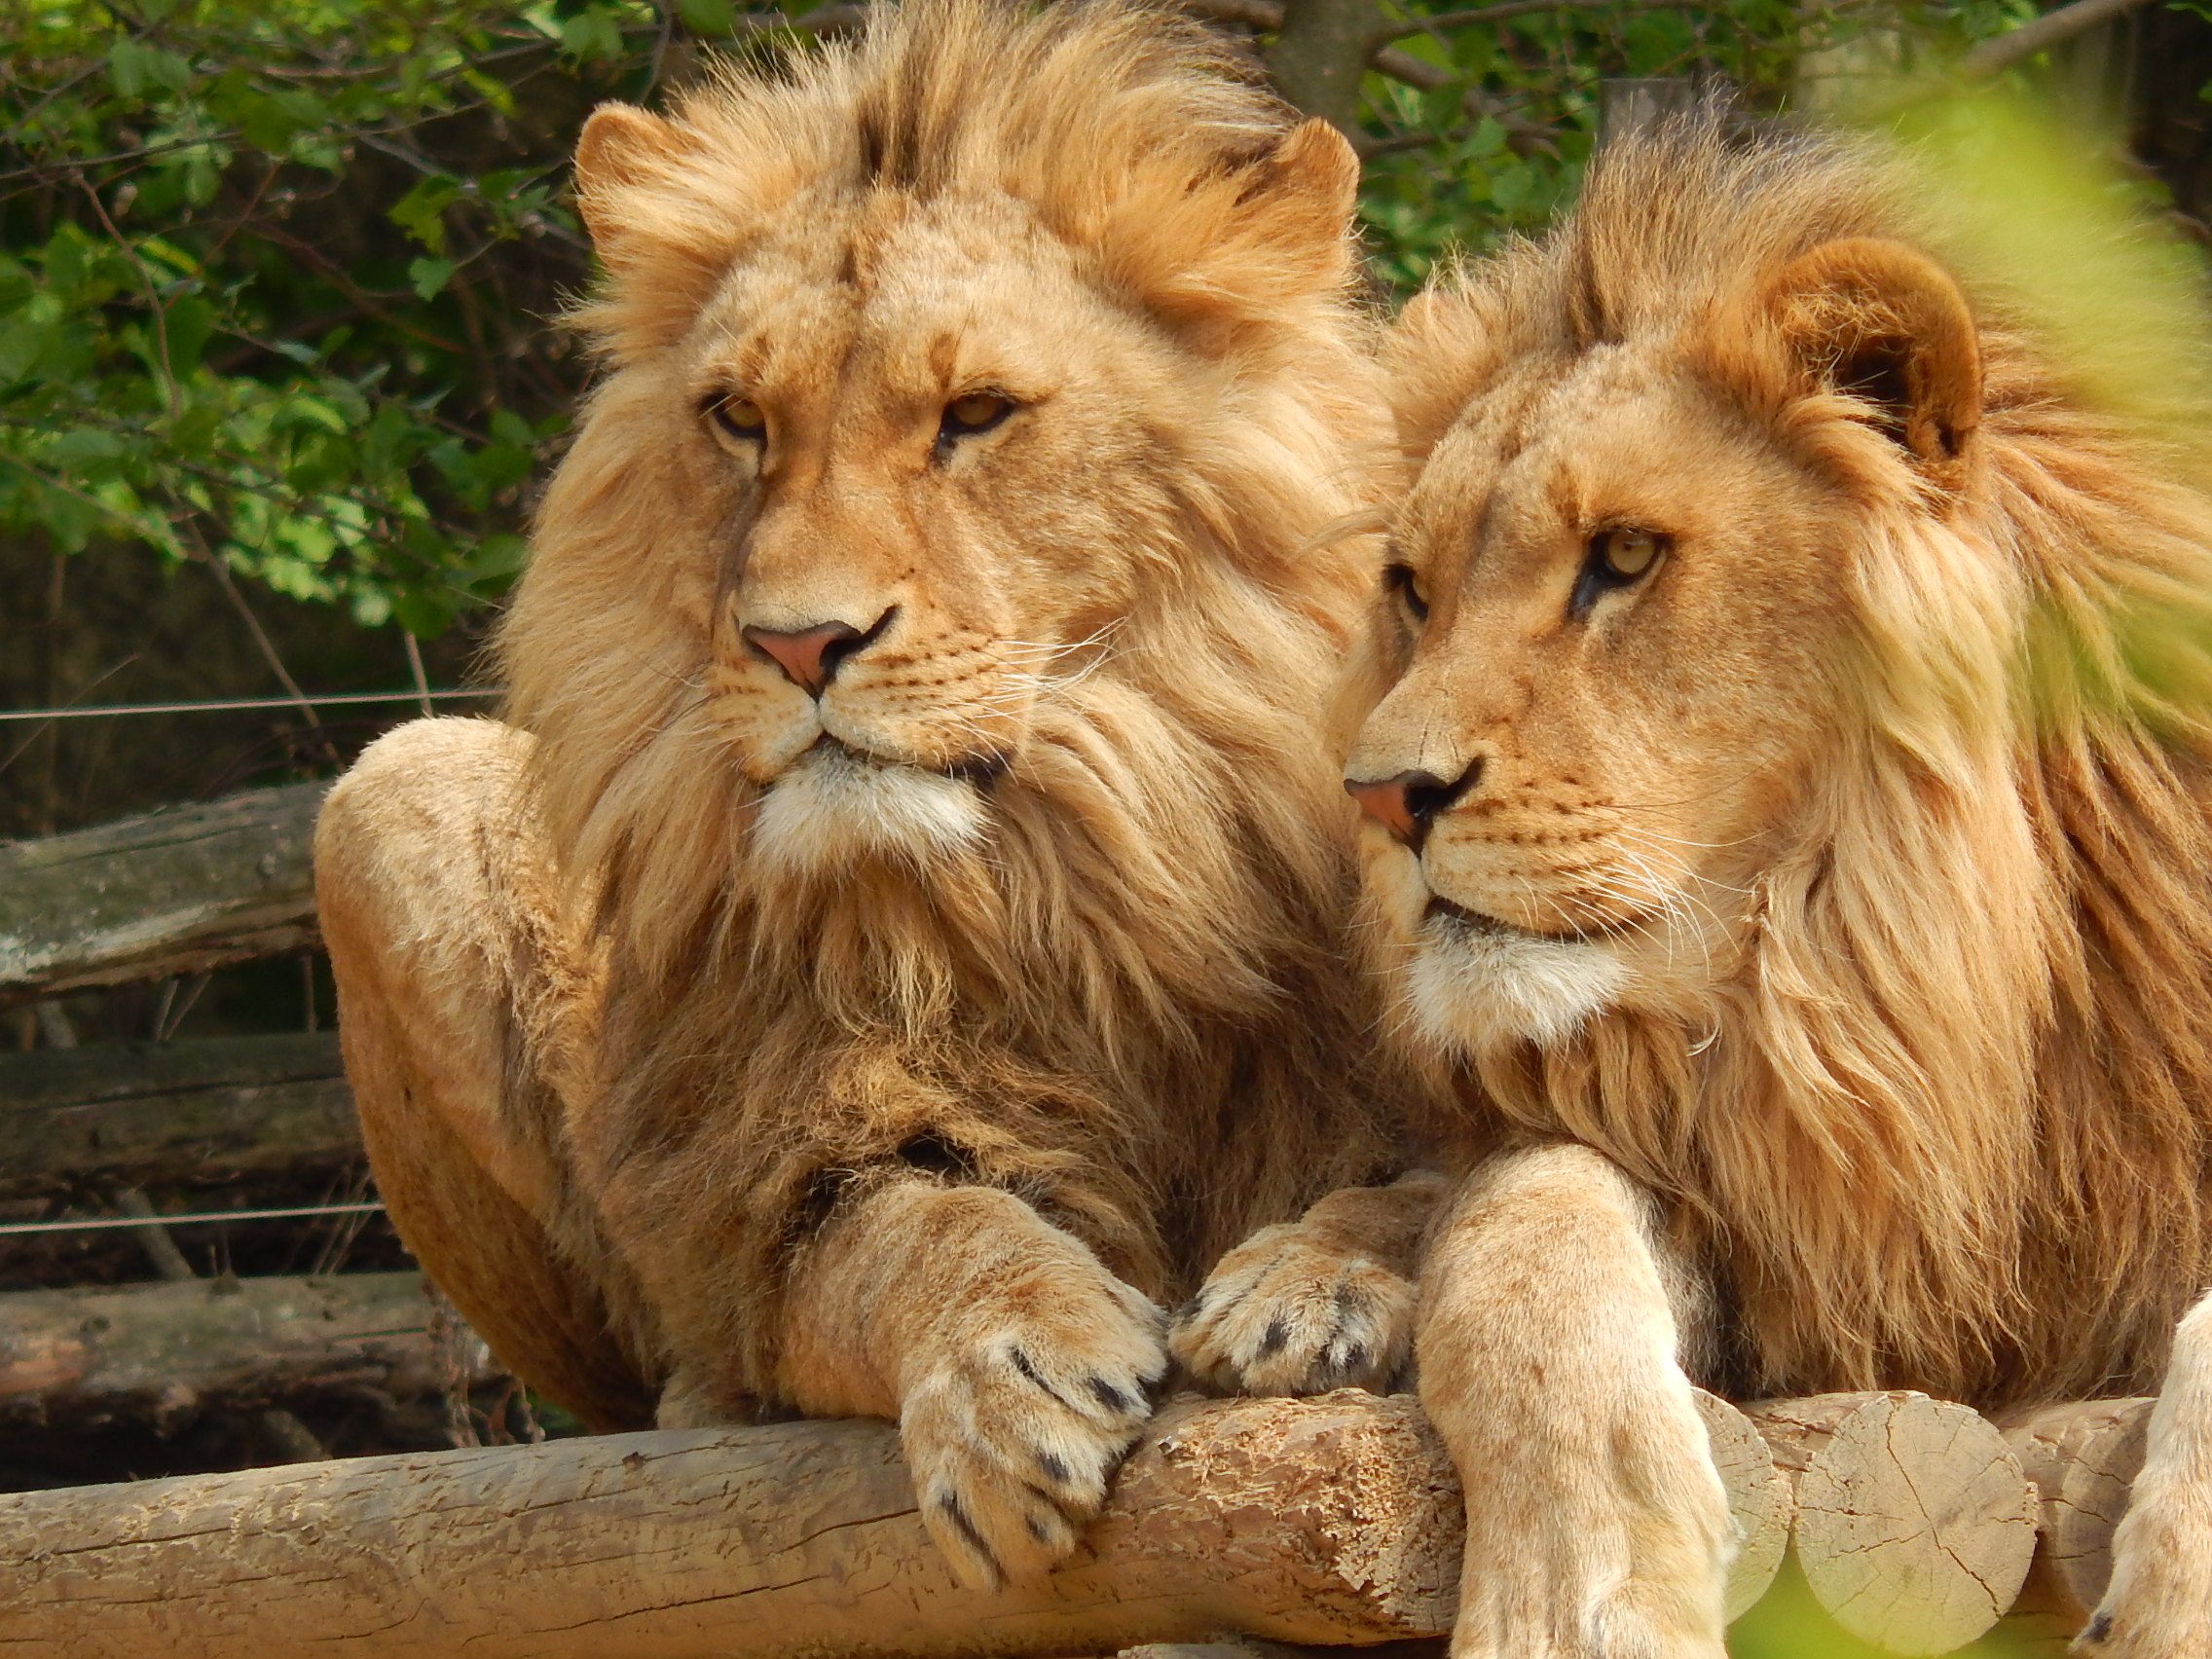 Kings of the Jungle (I am really proud of this picture)